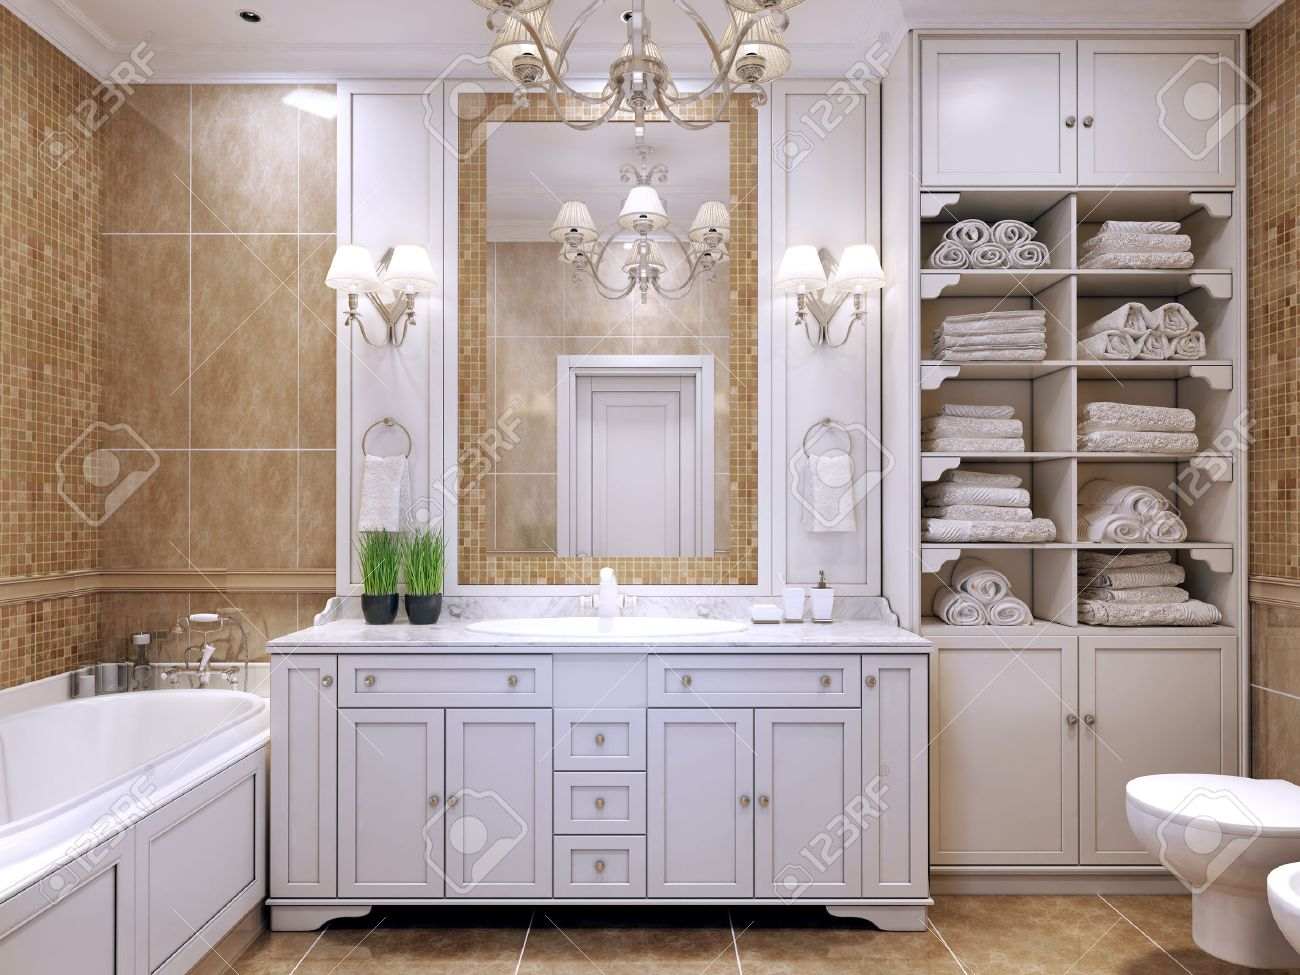 Cream colored bathroom cabinets - Furniture In Classic Bathroom Cream Colored Bathroom With White Furniture Great Mirror With Sconces